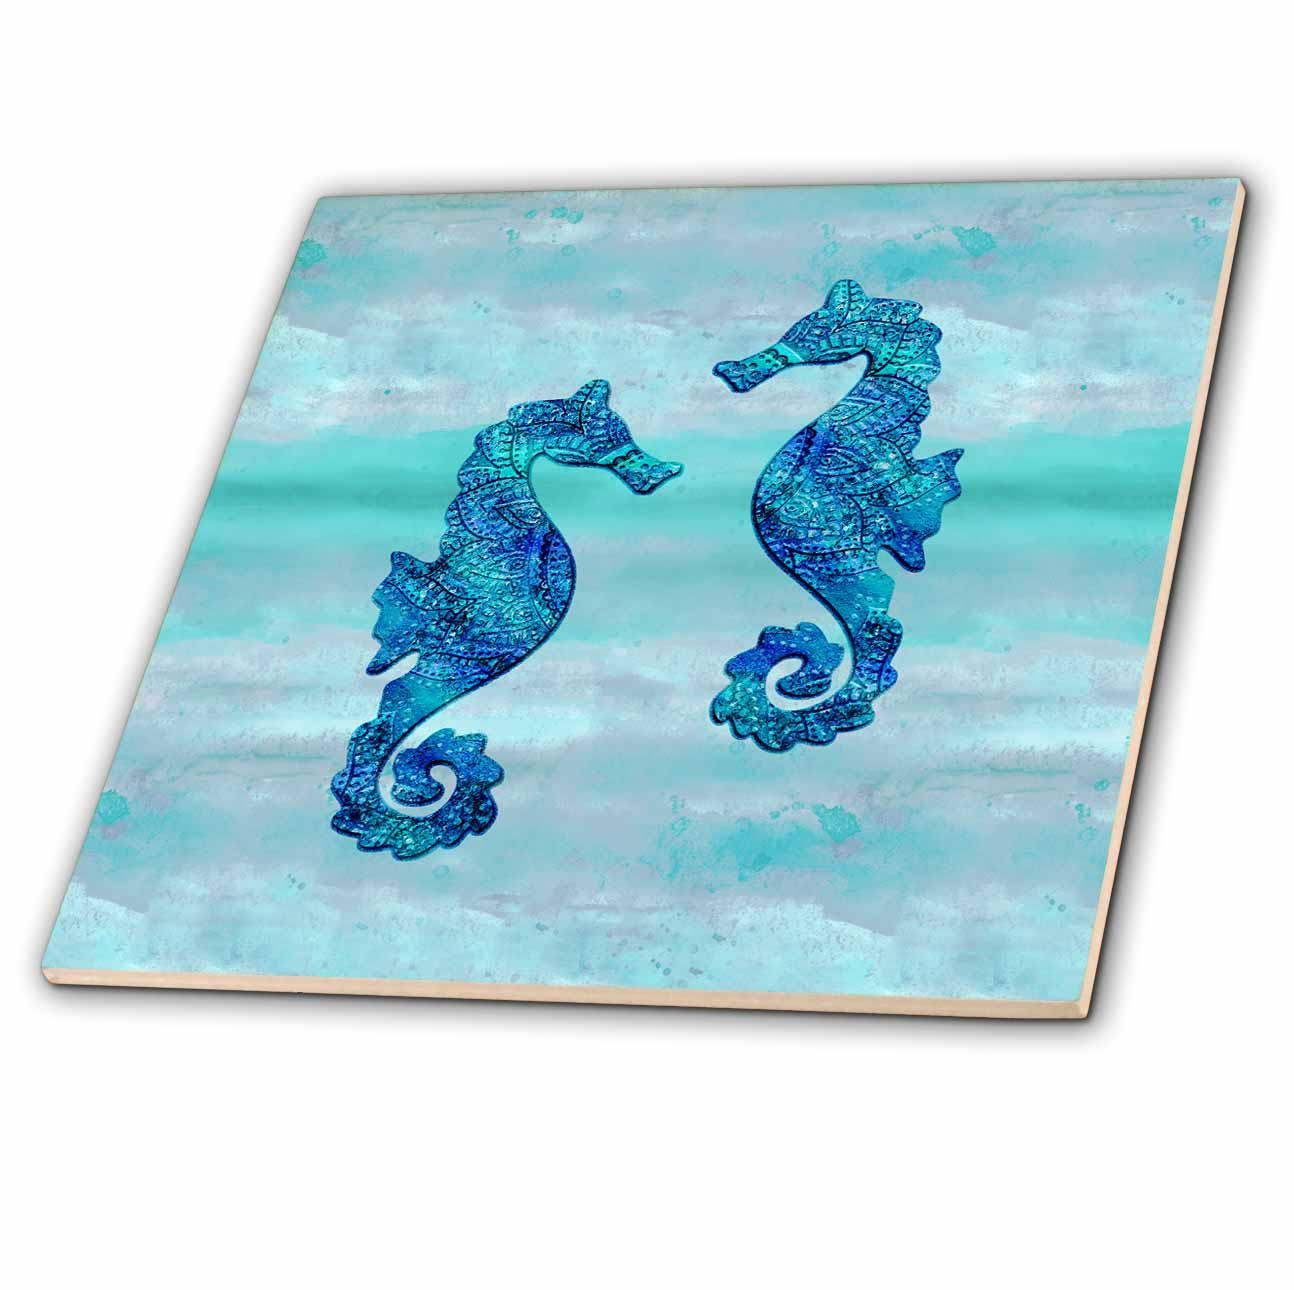 3dRose Seahorses couple blue ink - Ceramic Tile, 12-inch